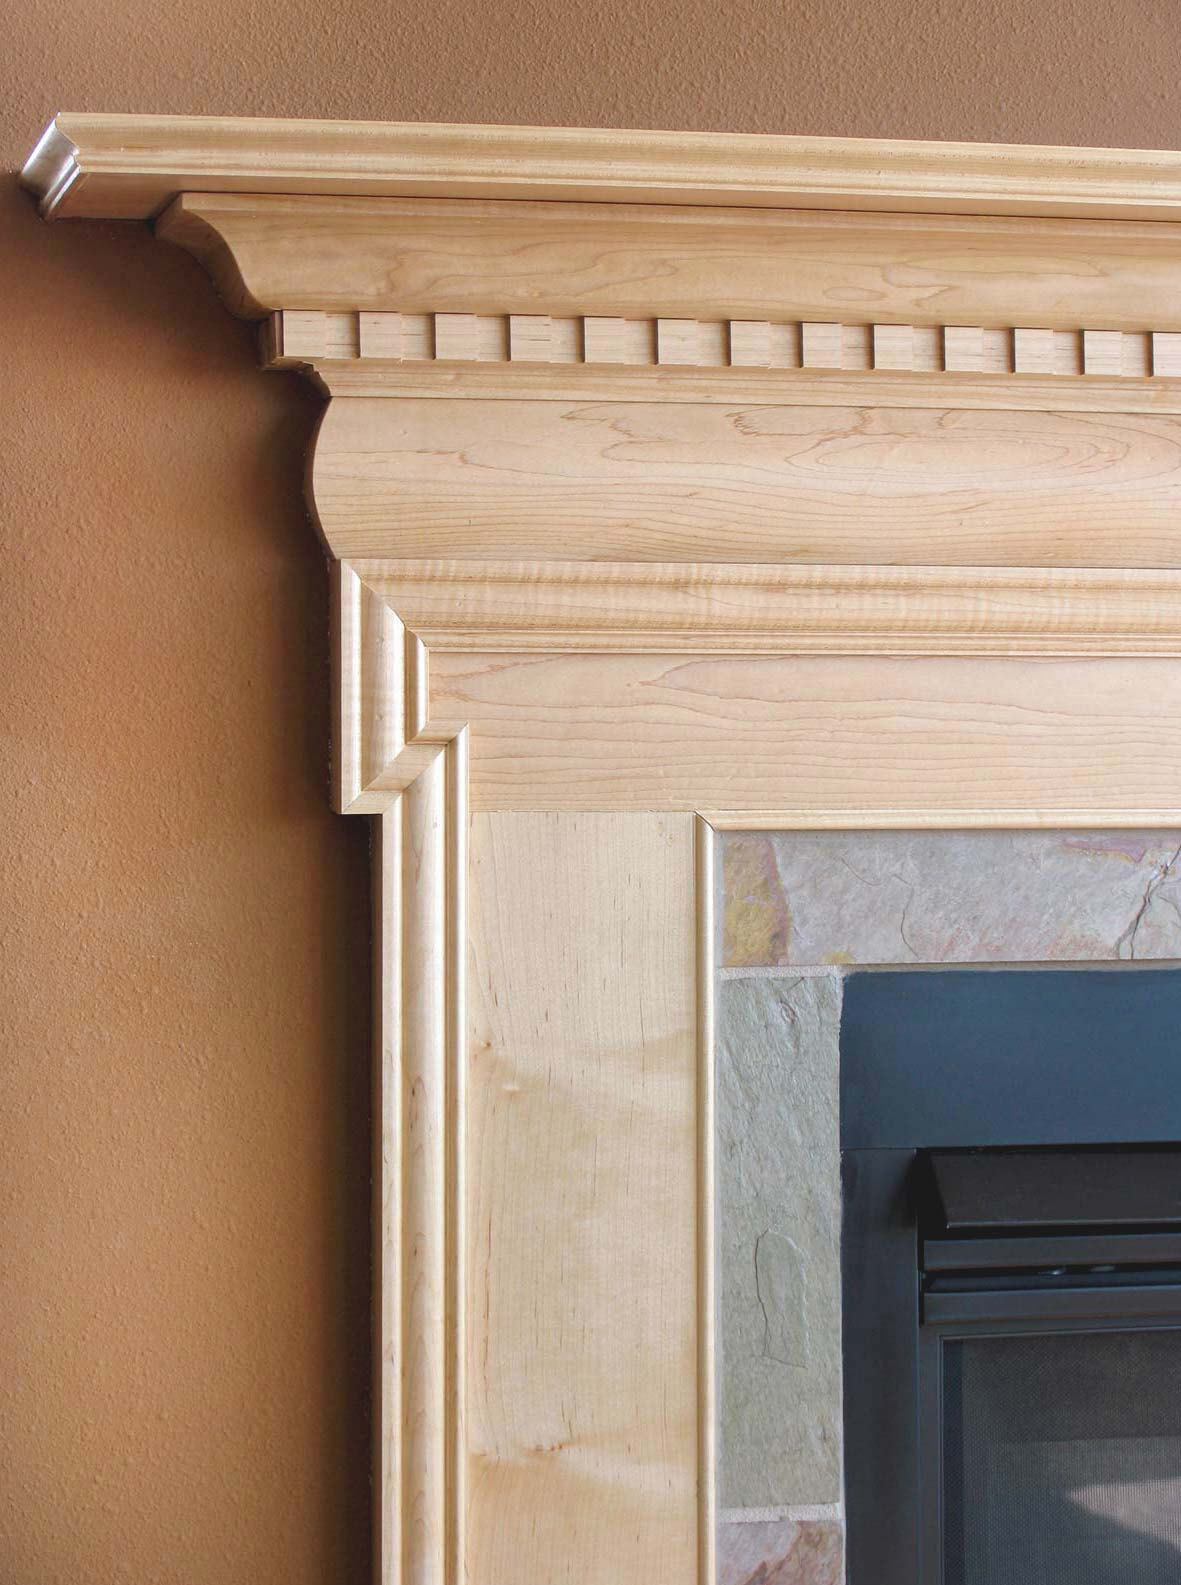 Hardwood mantel with an intricate repeating wood pattern